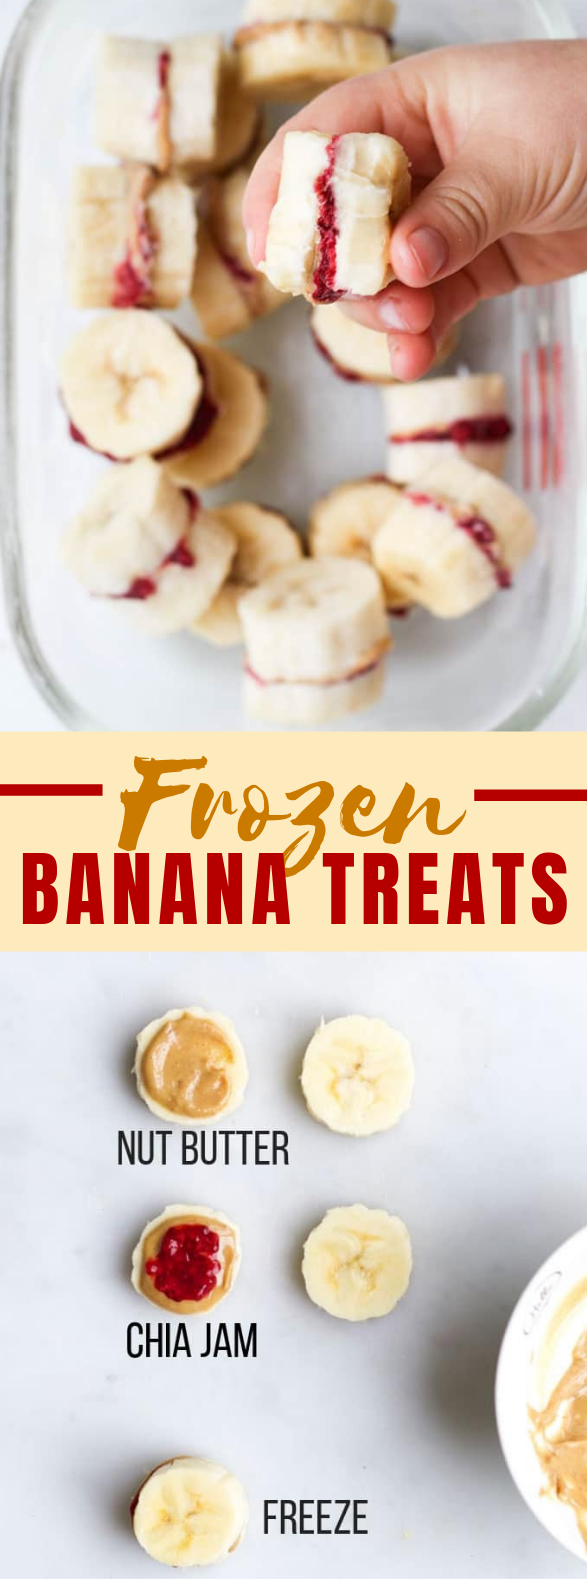 FROZEN BANANA TREATS #diet #healthysnack